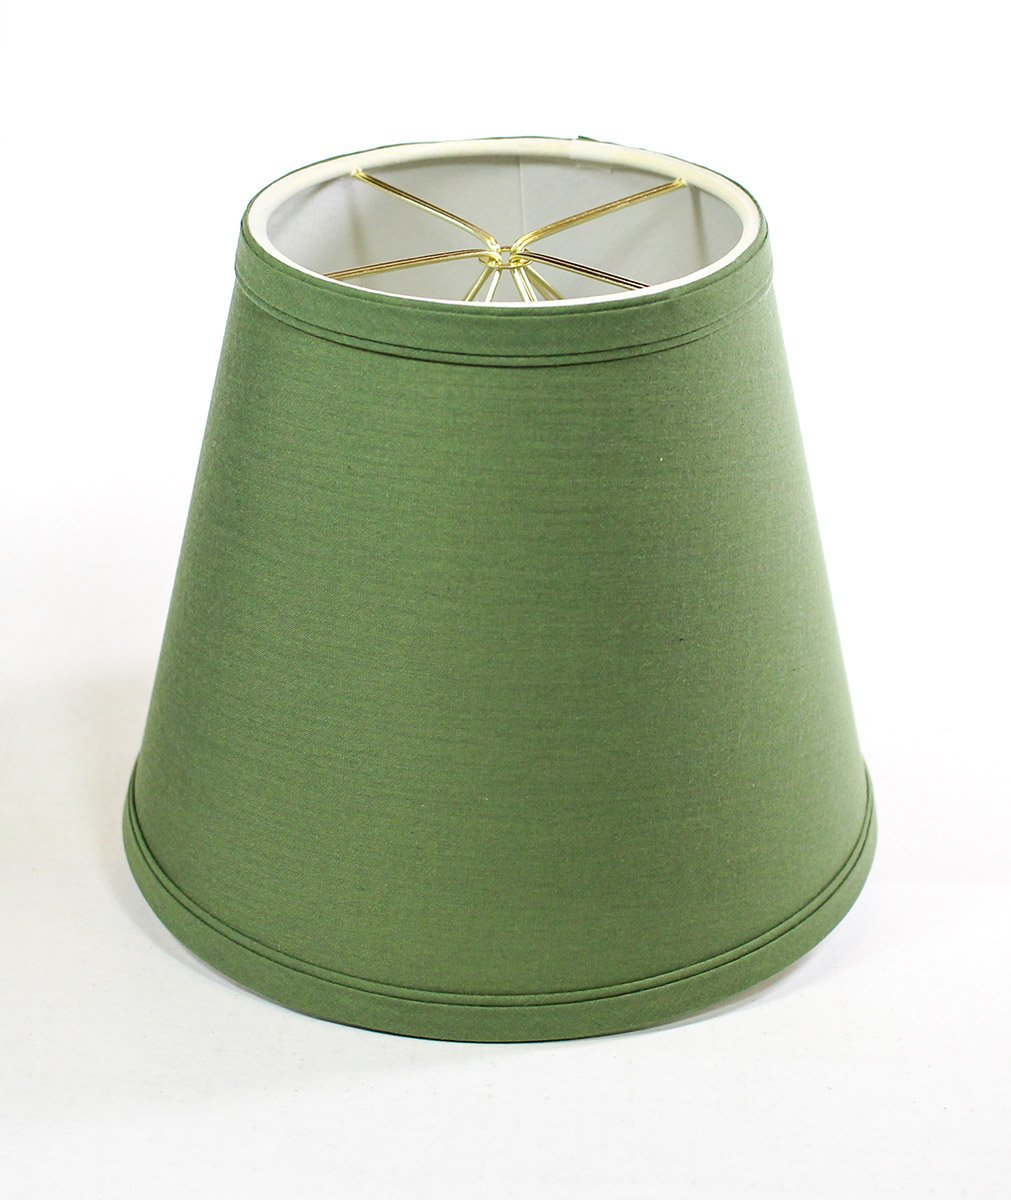 5x8x7 Empire Linen Edison Clip On Lampshade Kale Green By Home Concept - Perfect for small table lamps, desk lamps, and accent lights -Small, Kale Green